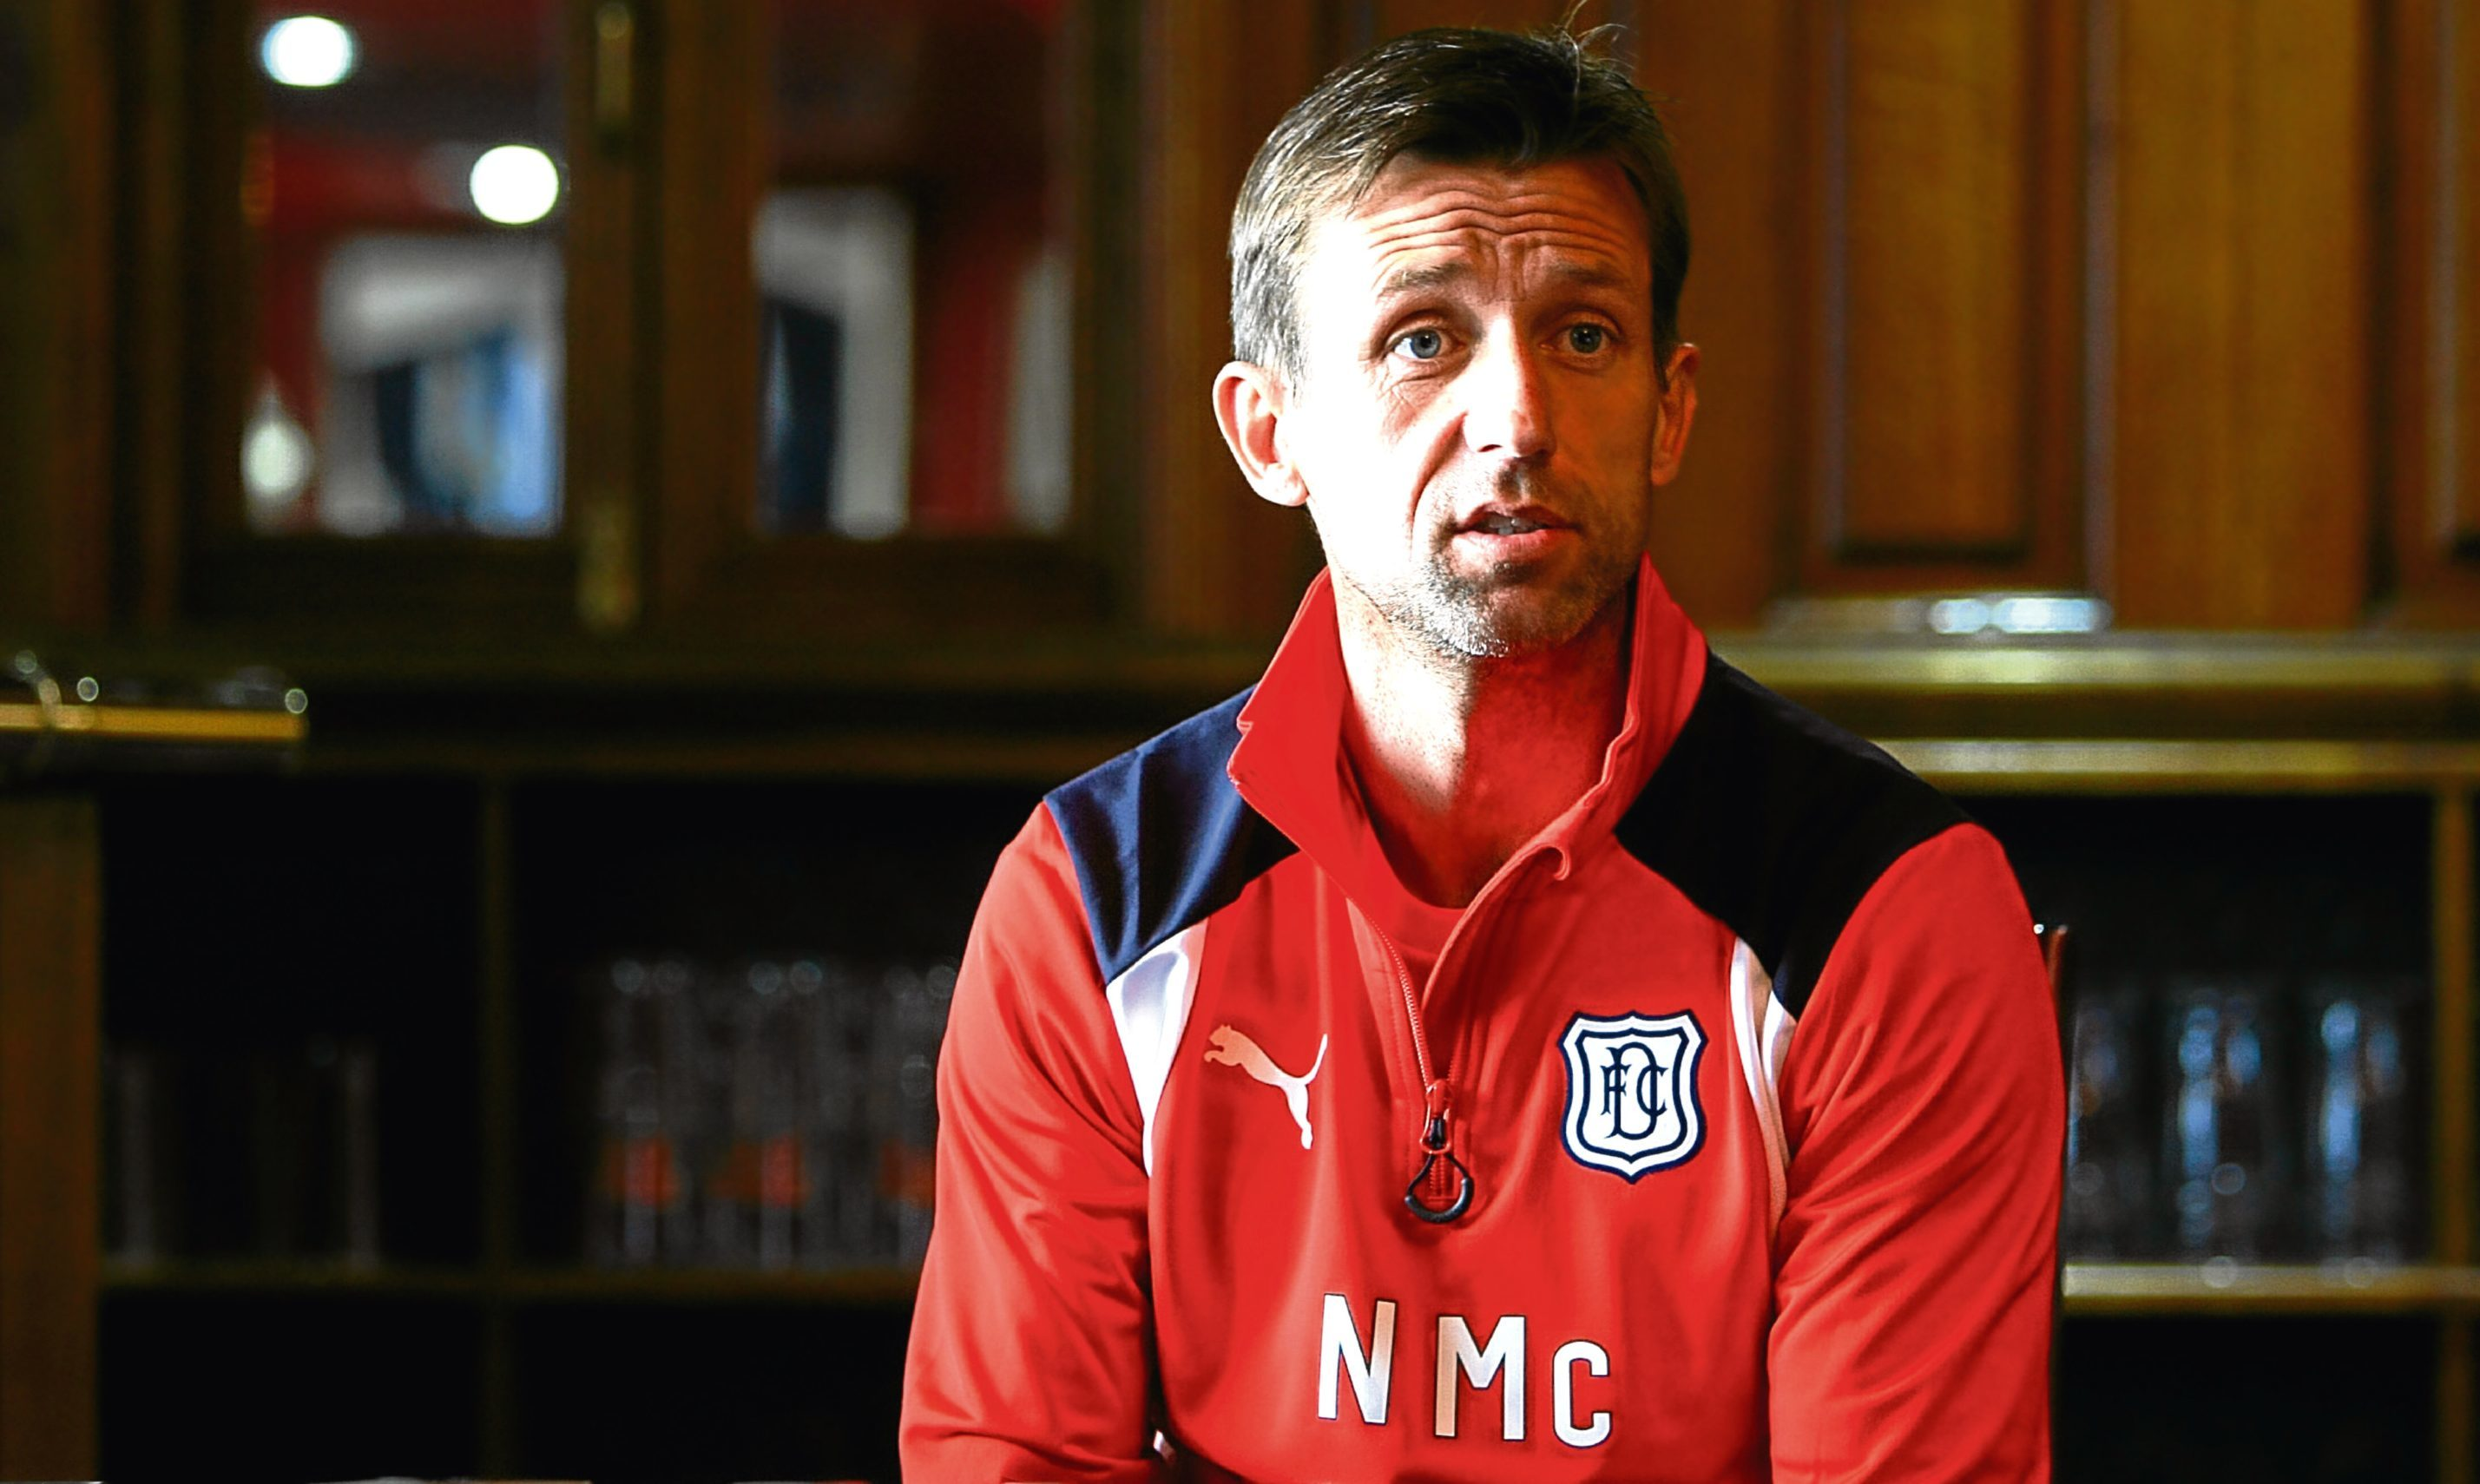 Dundee manager Neil McCann talking to the press at Dens Park